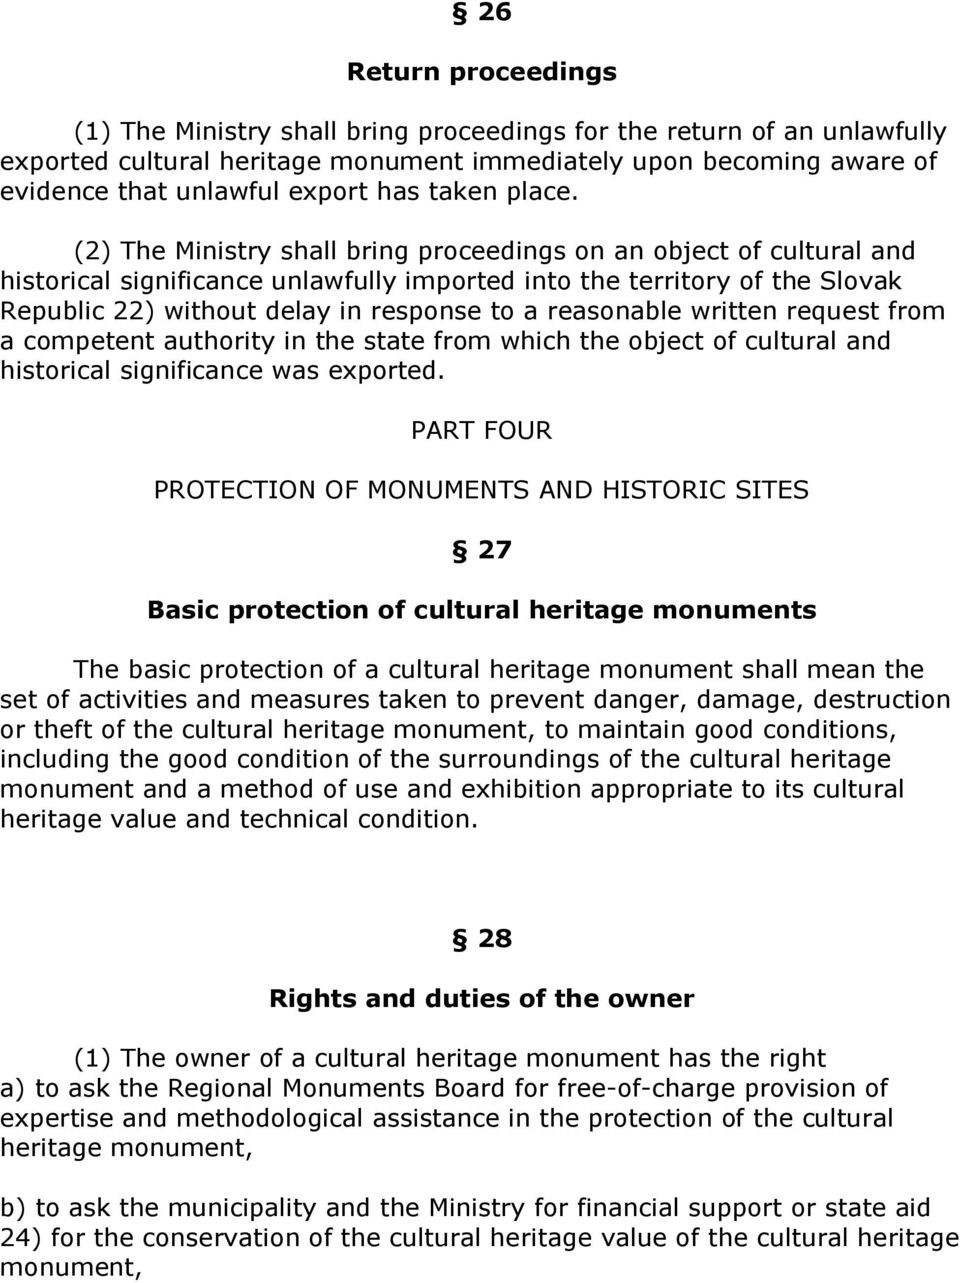 (2) The Ministry shall bring proceedings on an object of cultural and historical significance unlawfully imported into the territory of the Slovak Republic 22) without delay in response to a